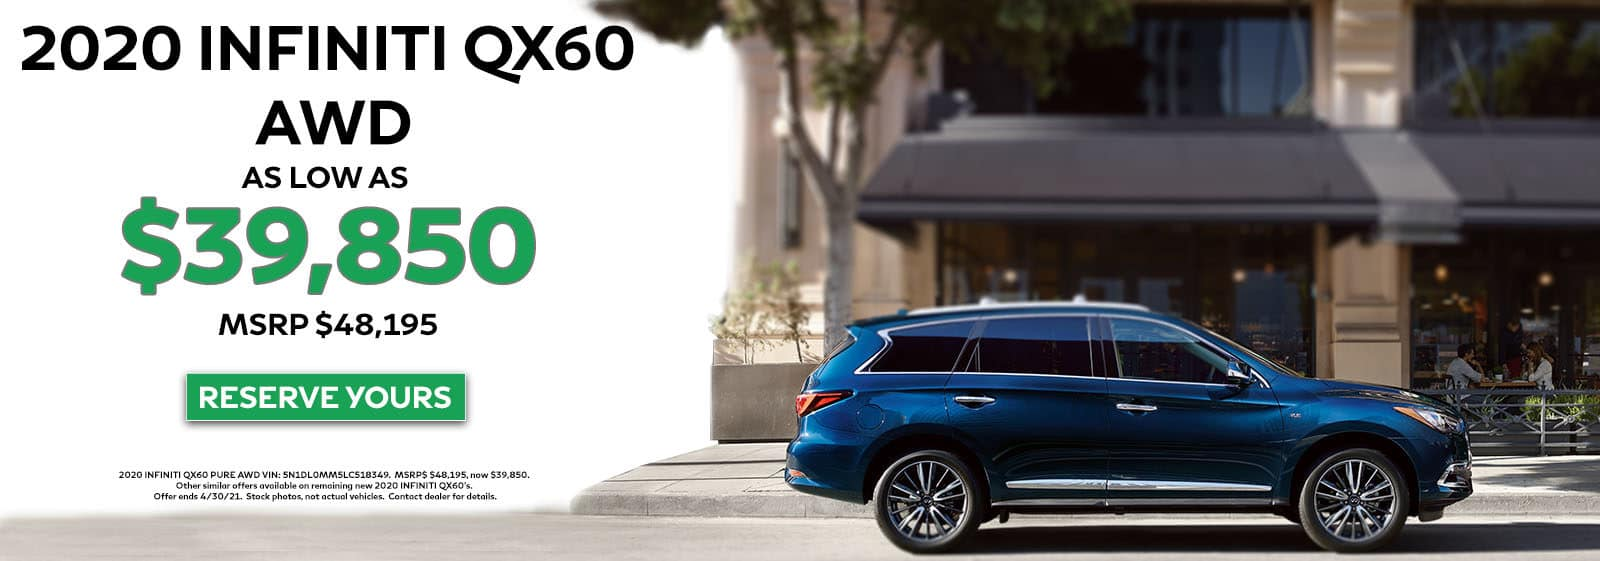 2020-qx60-april-10koffer